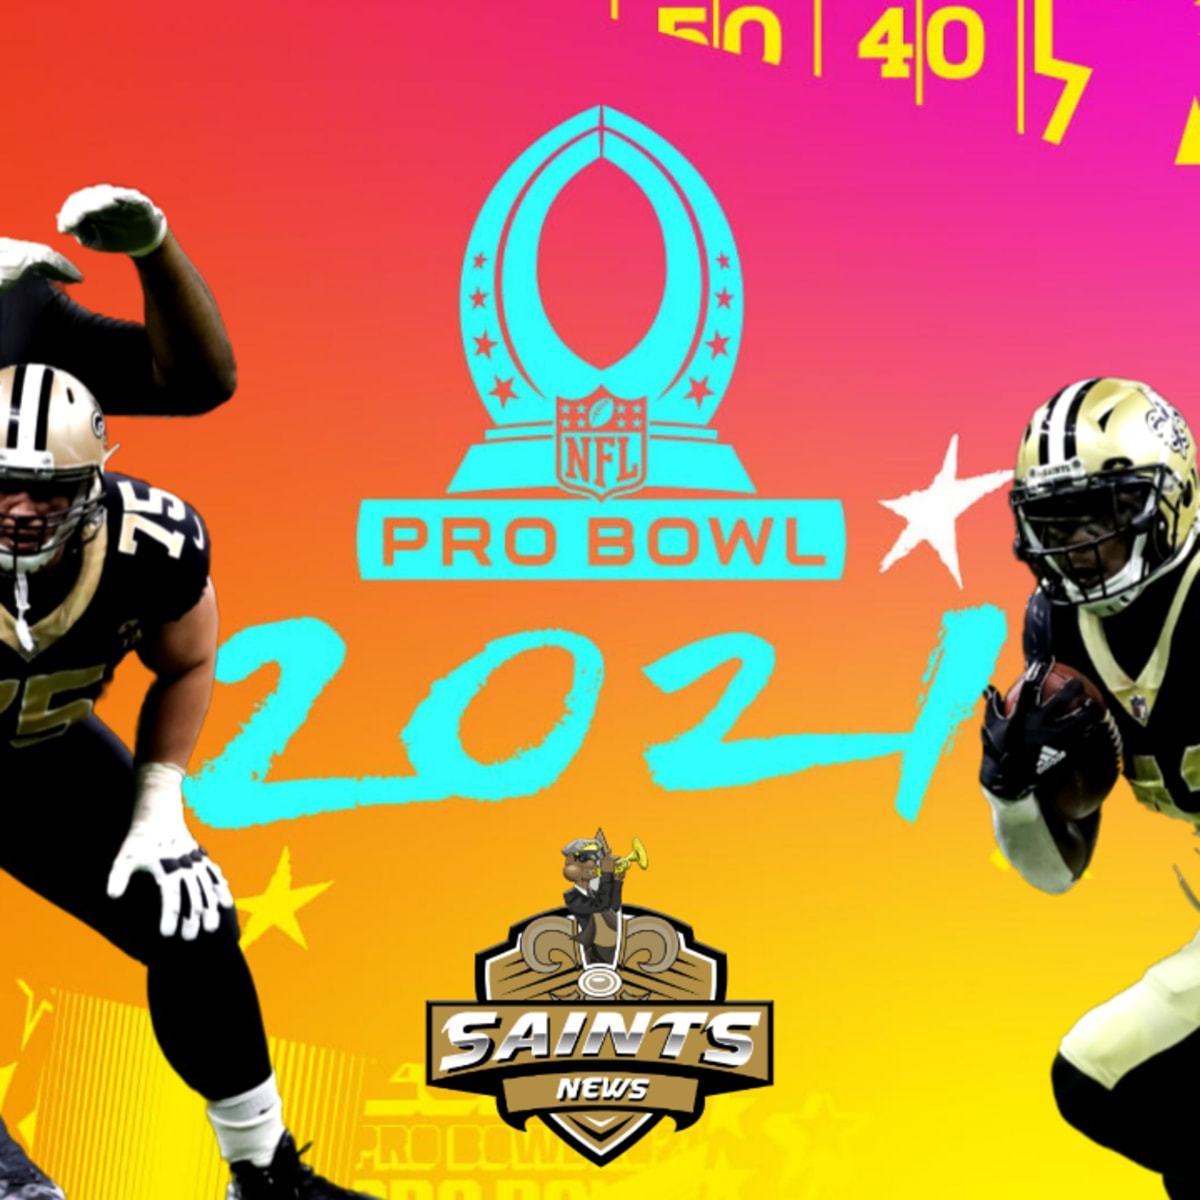 pro bowl betting line 2021